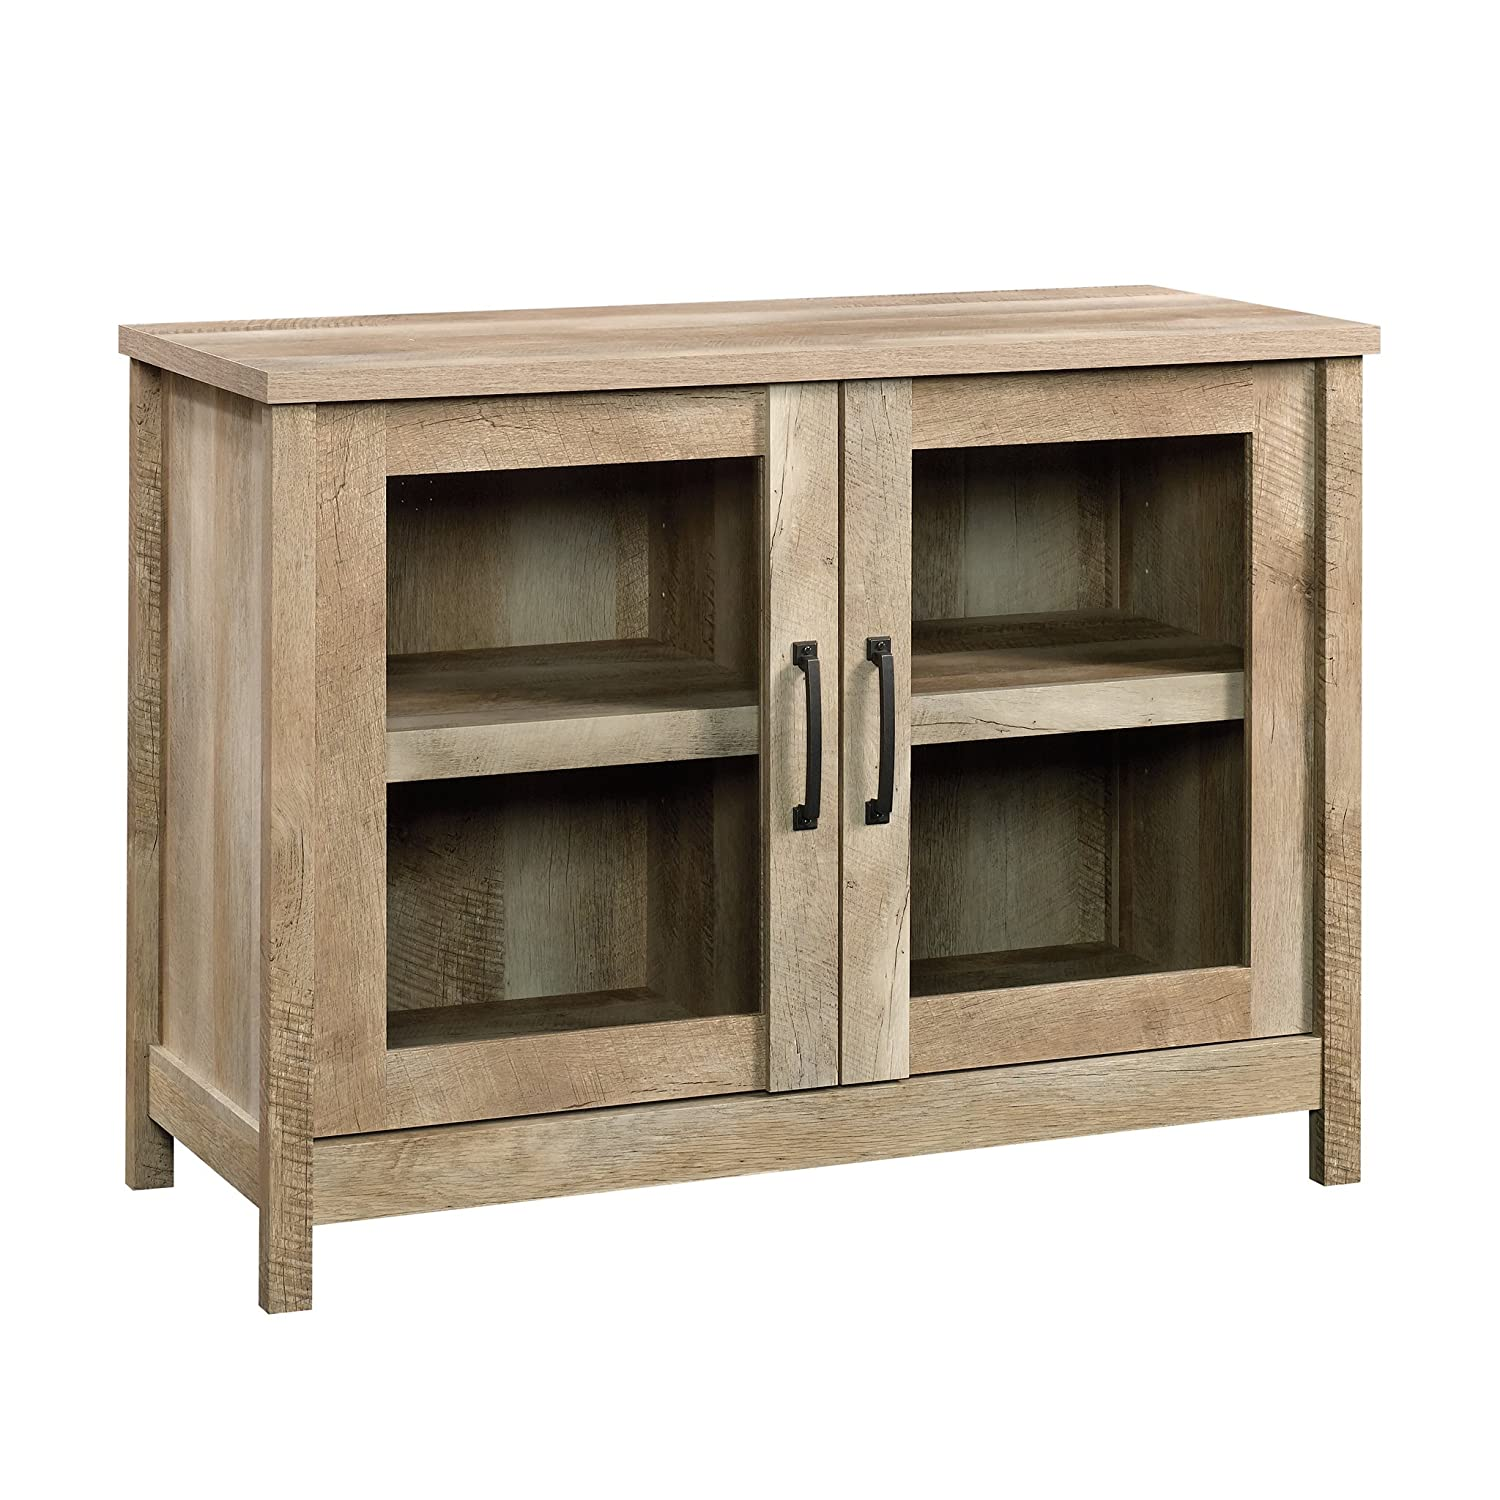 Sauder 420334 Cannery Bridge Display Cabinet, L: 41.10 x W: 17.48 x H: 30.32, Lintel Oak Sauder Woodworking